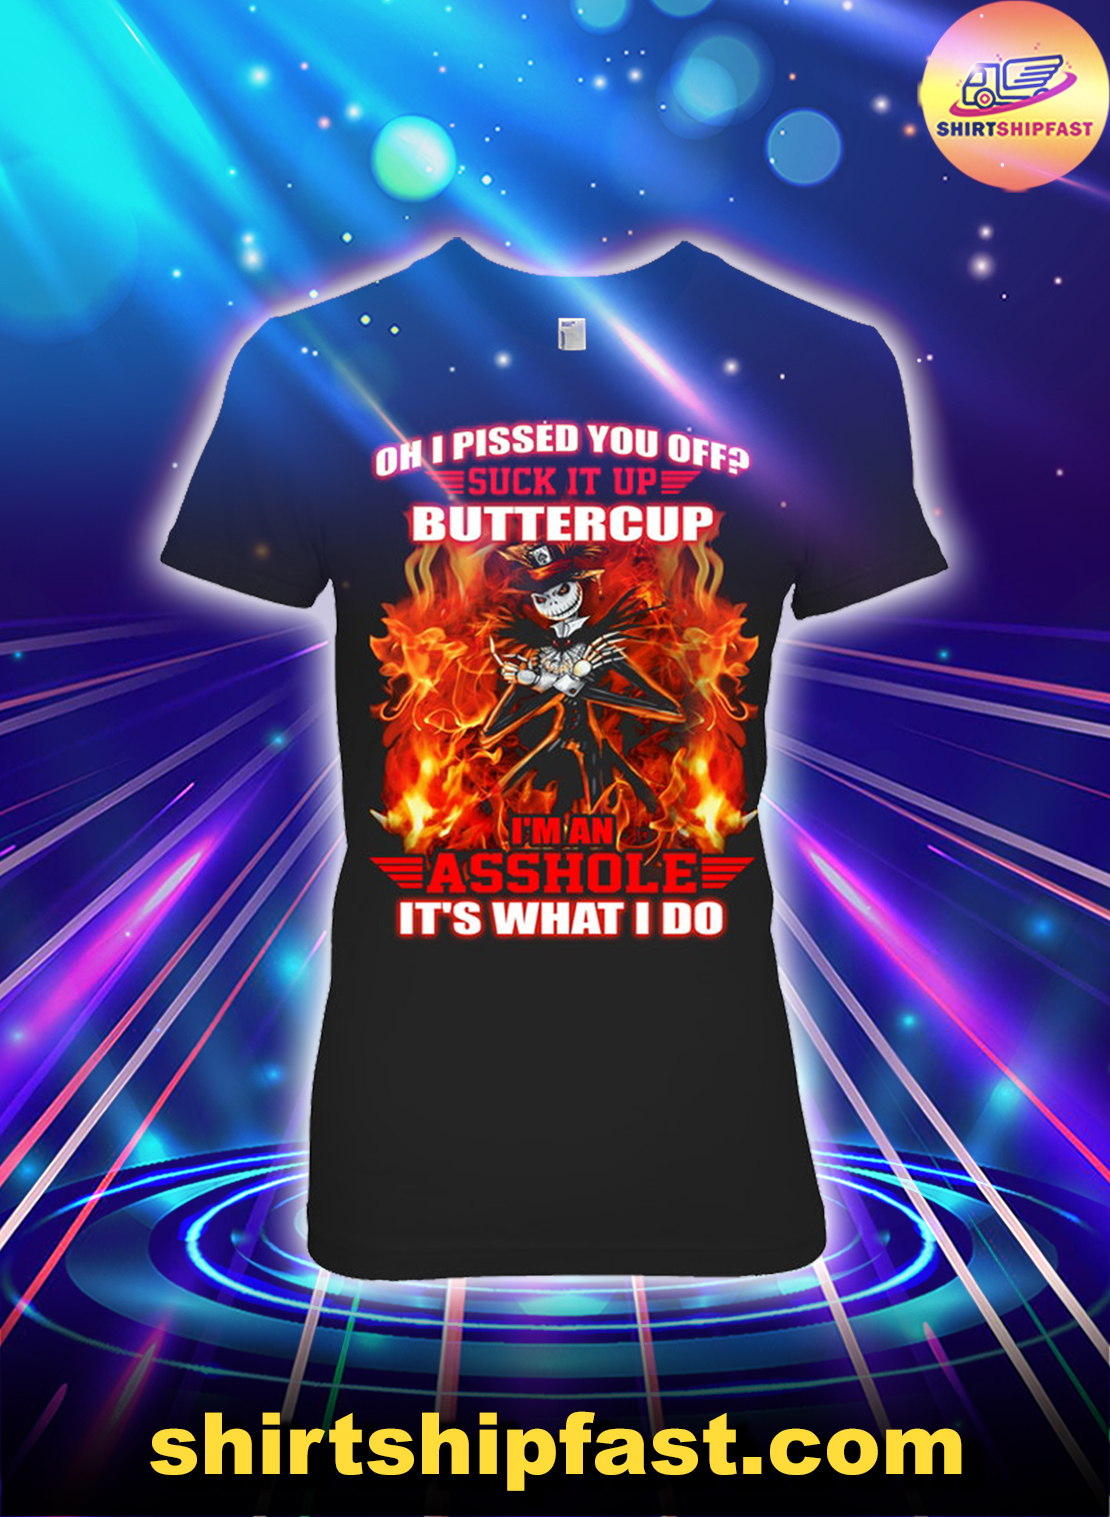 Jack skelington fire Oh I pissed you off suck it up buttercup I'm an asshole lady shirt